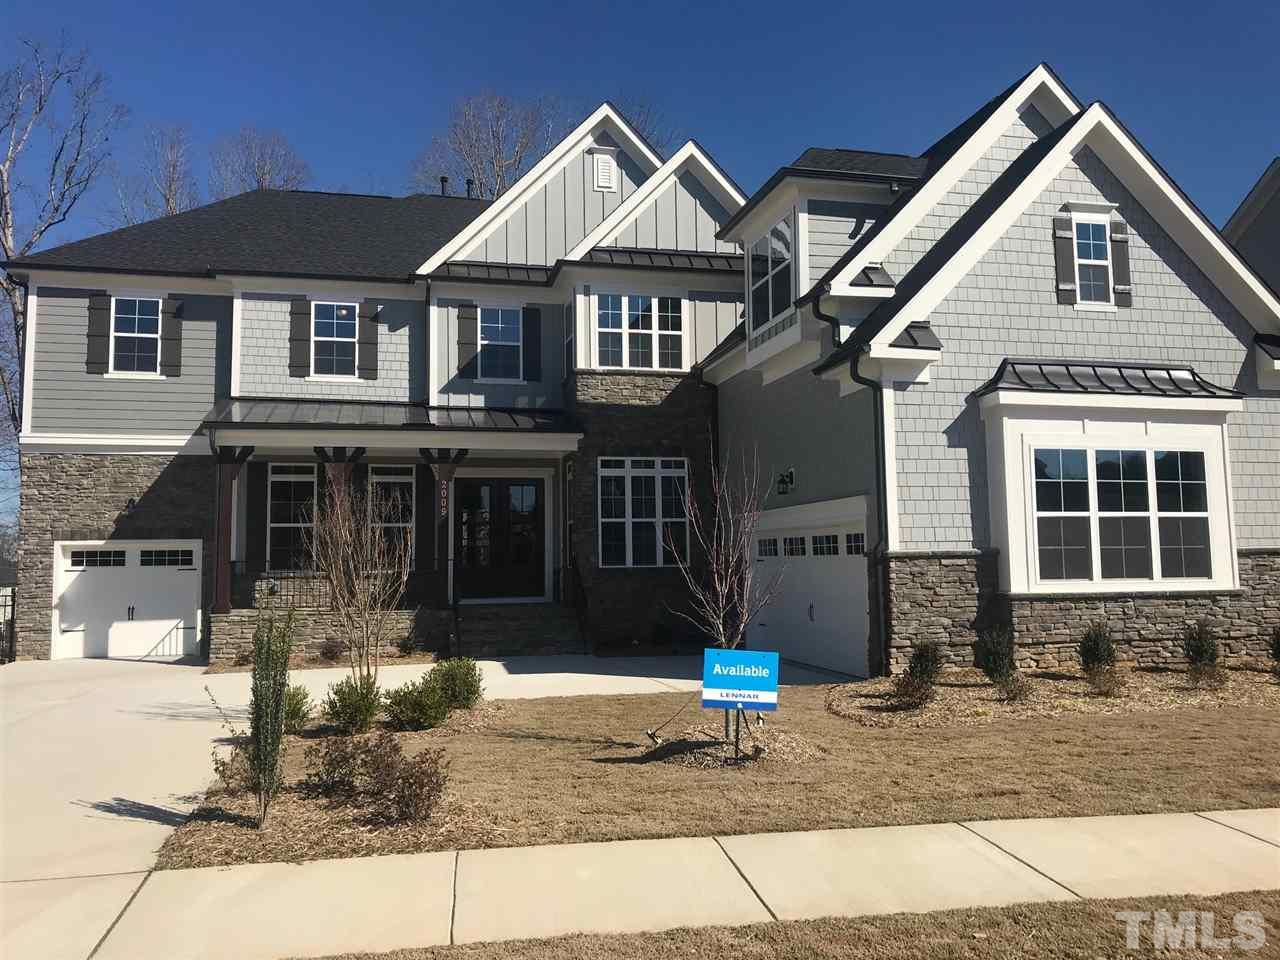 Property for sale at 2009 White Rocks Road Unit 23, Wake Forest,  NC 27587